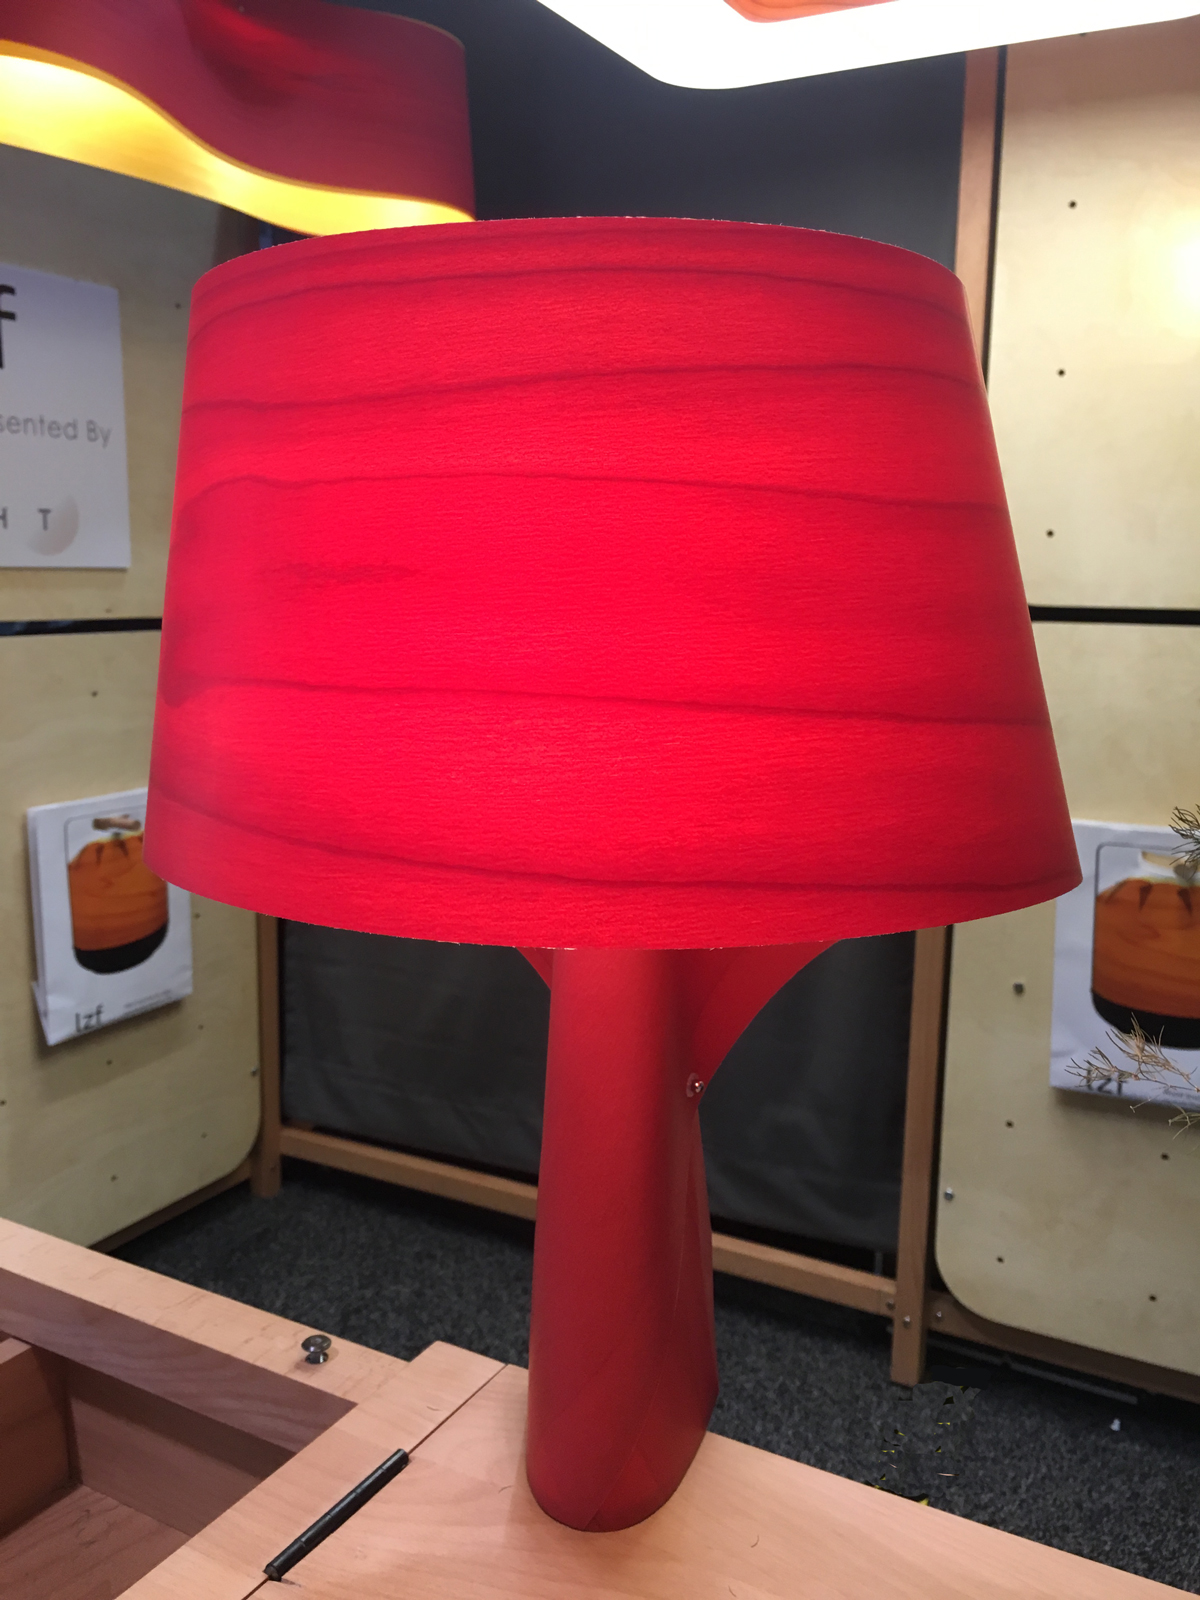 LZF Lamps Air table lamp at LightShow West 2015